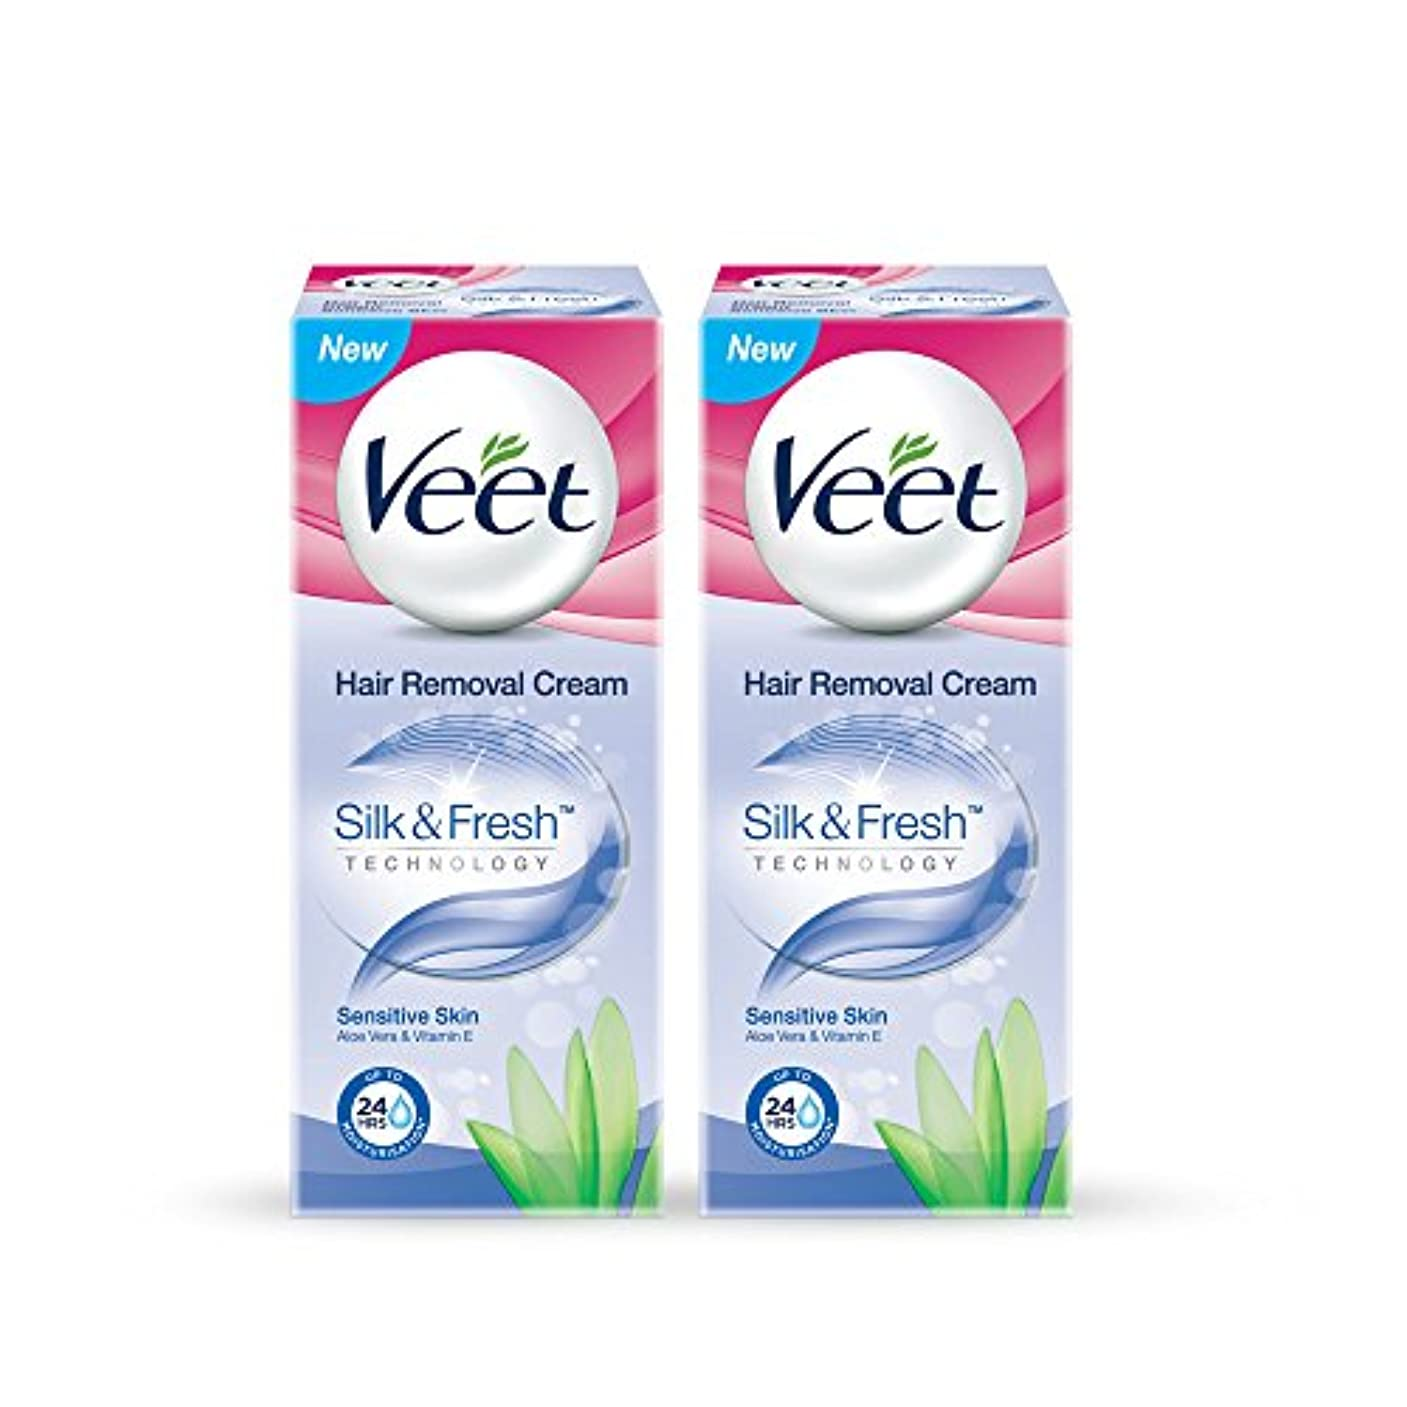 錫小間予防接種するVeet Hair Removal Gel Cream For Sensitive Skin With Aloe Vera and Vitamin E 25 g (Pack of 2)